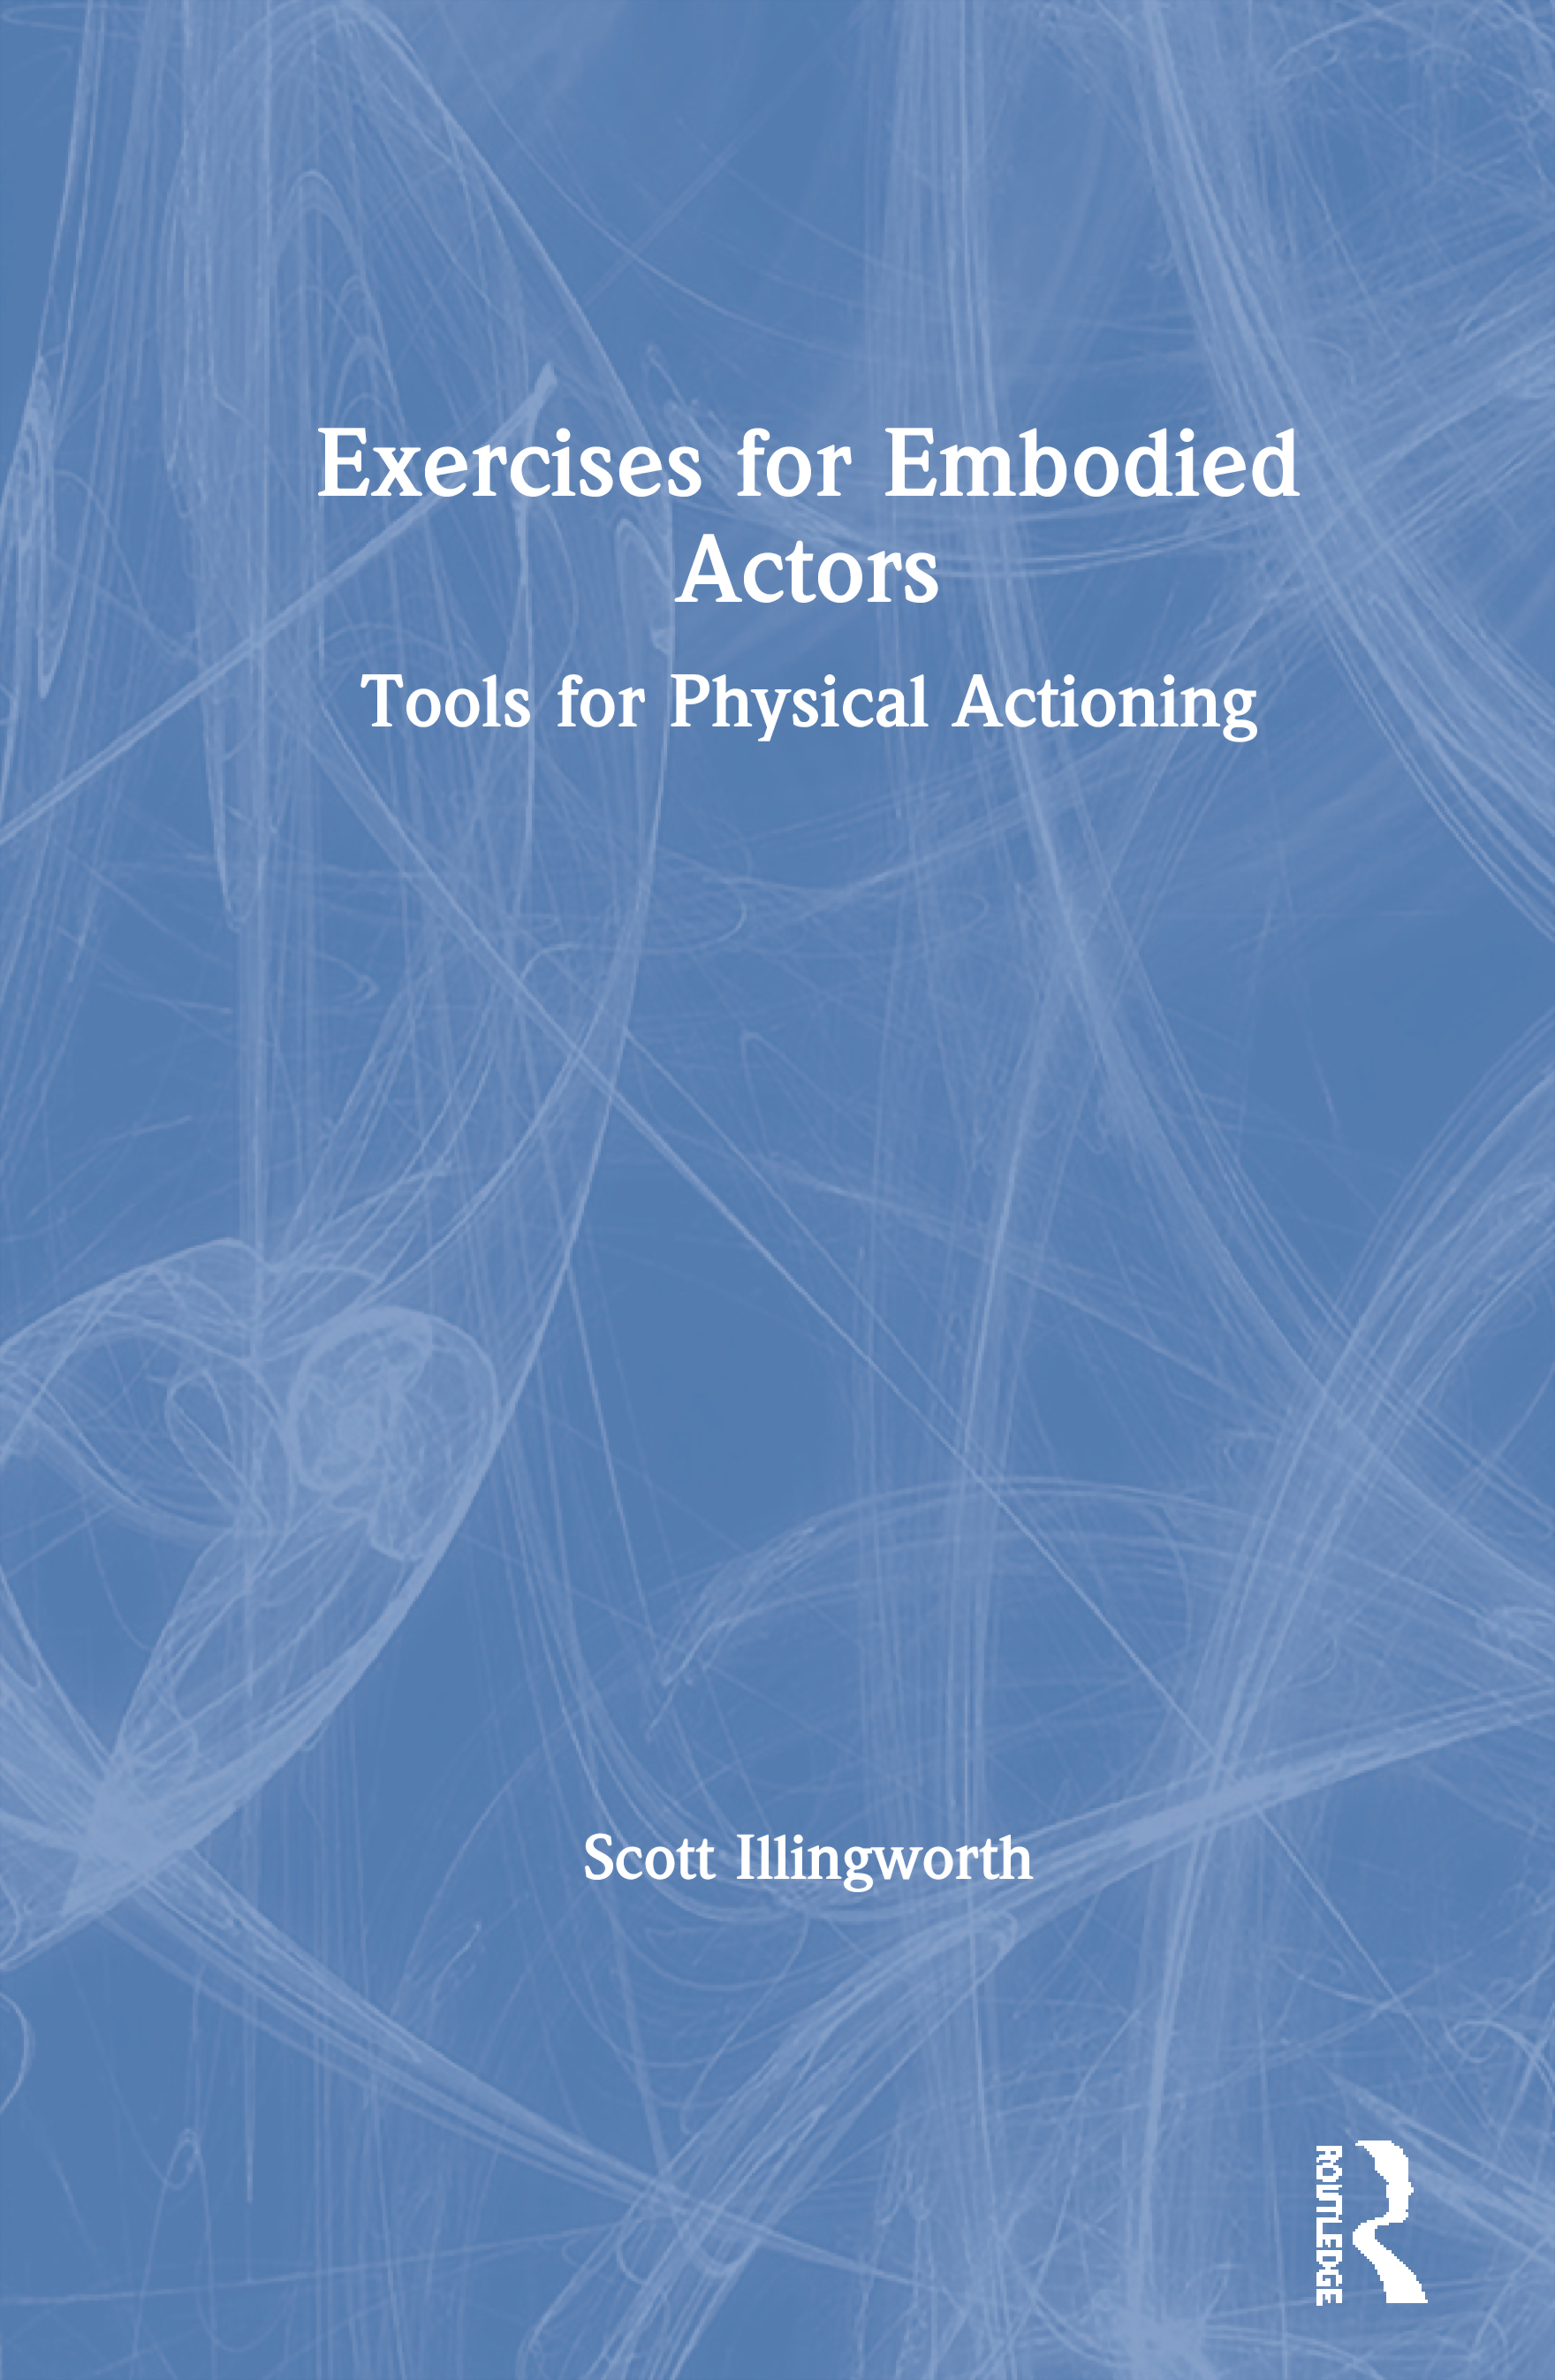 Exercises for Embodied Actors: Tools for Physical Actioning, 1st Edition (Paperback) book cover